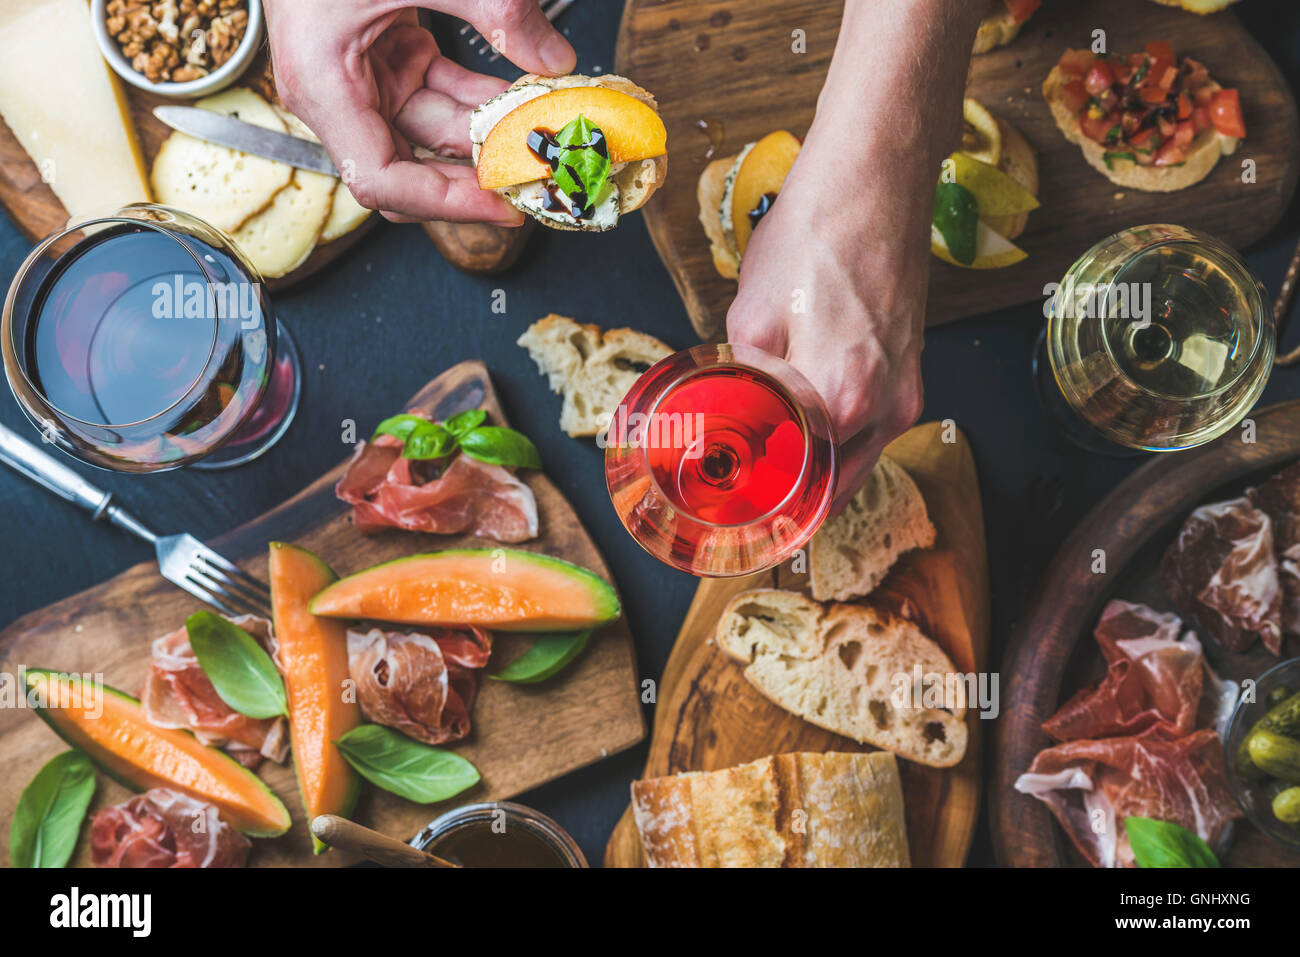 Italian wine antipasti snack variety and man's hands holding glass of rose wine and bruschetta, top view, selective - Stock Image